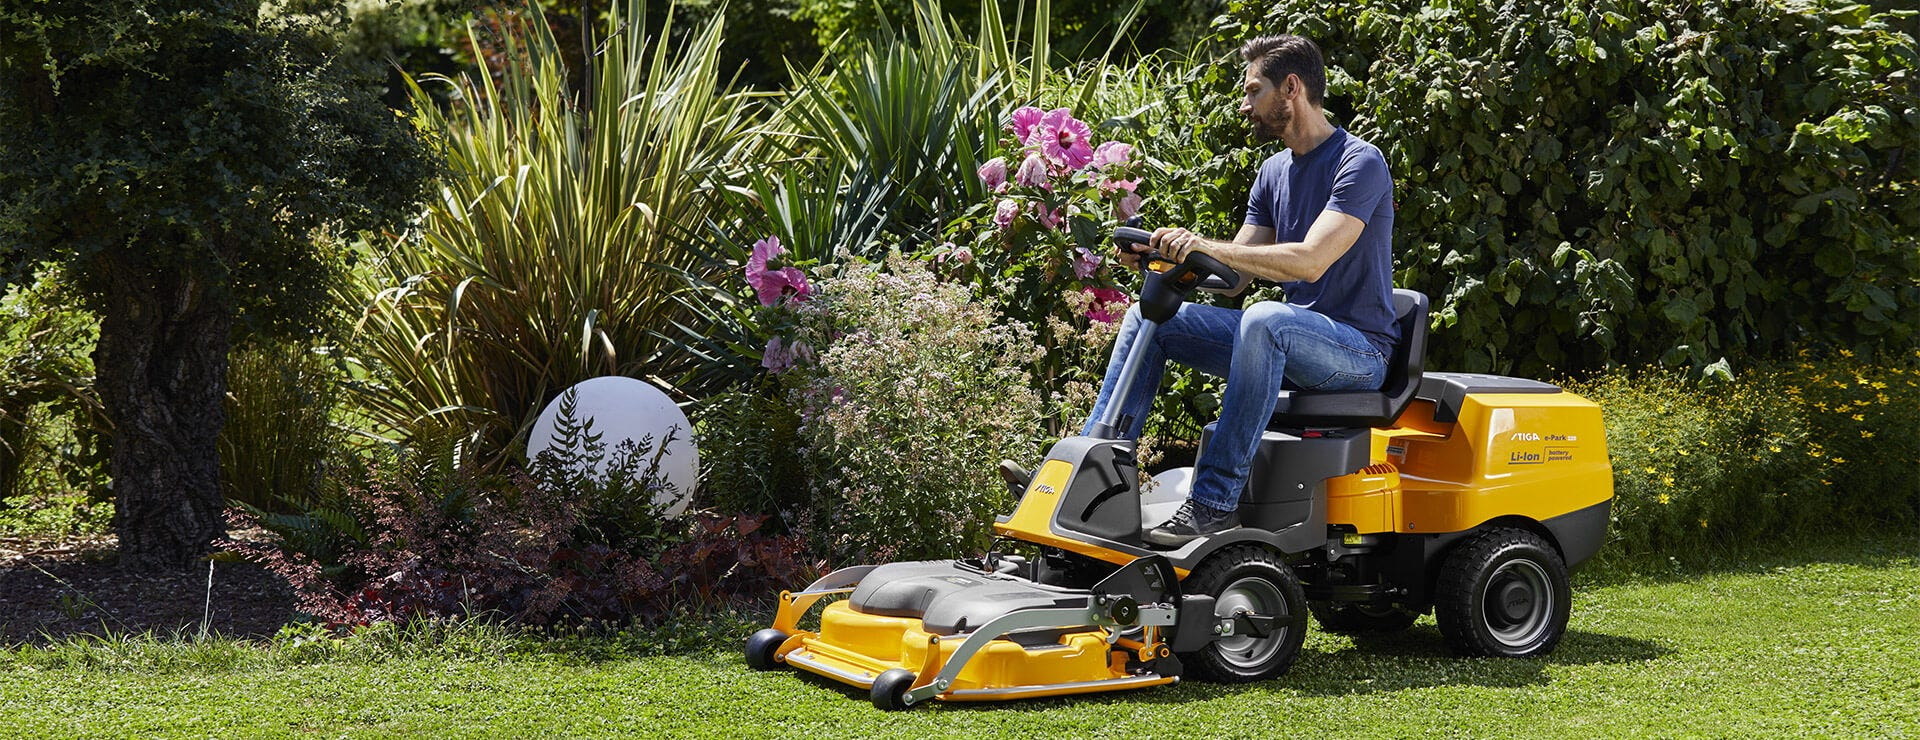 STIGA e-Park 220 battery front mower